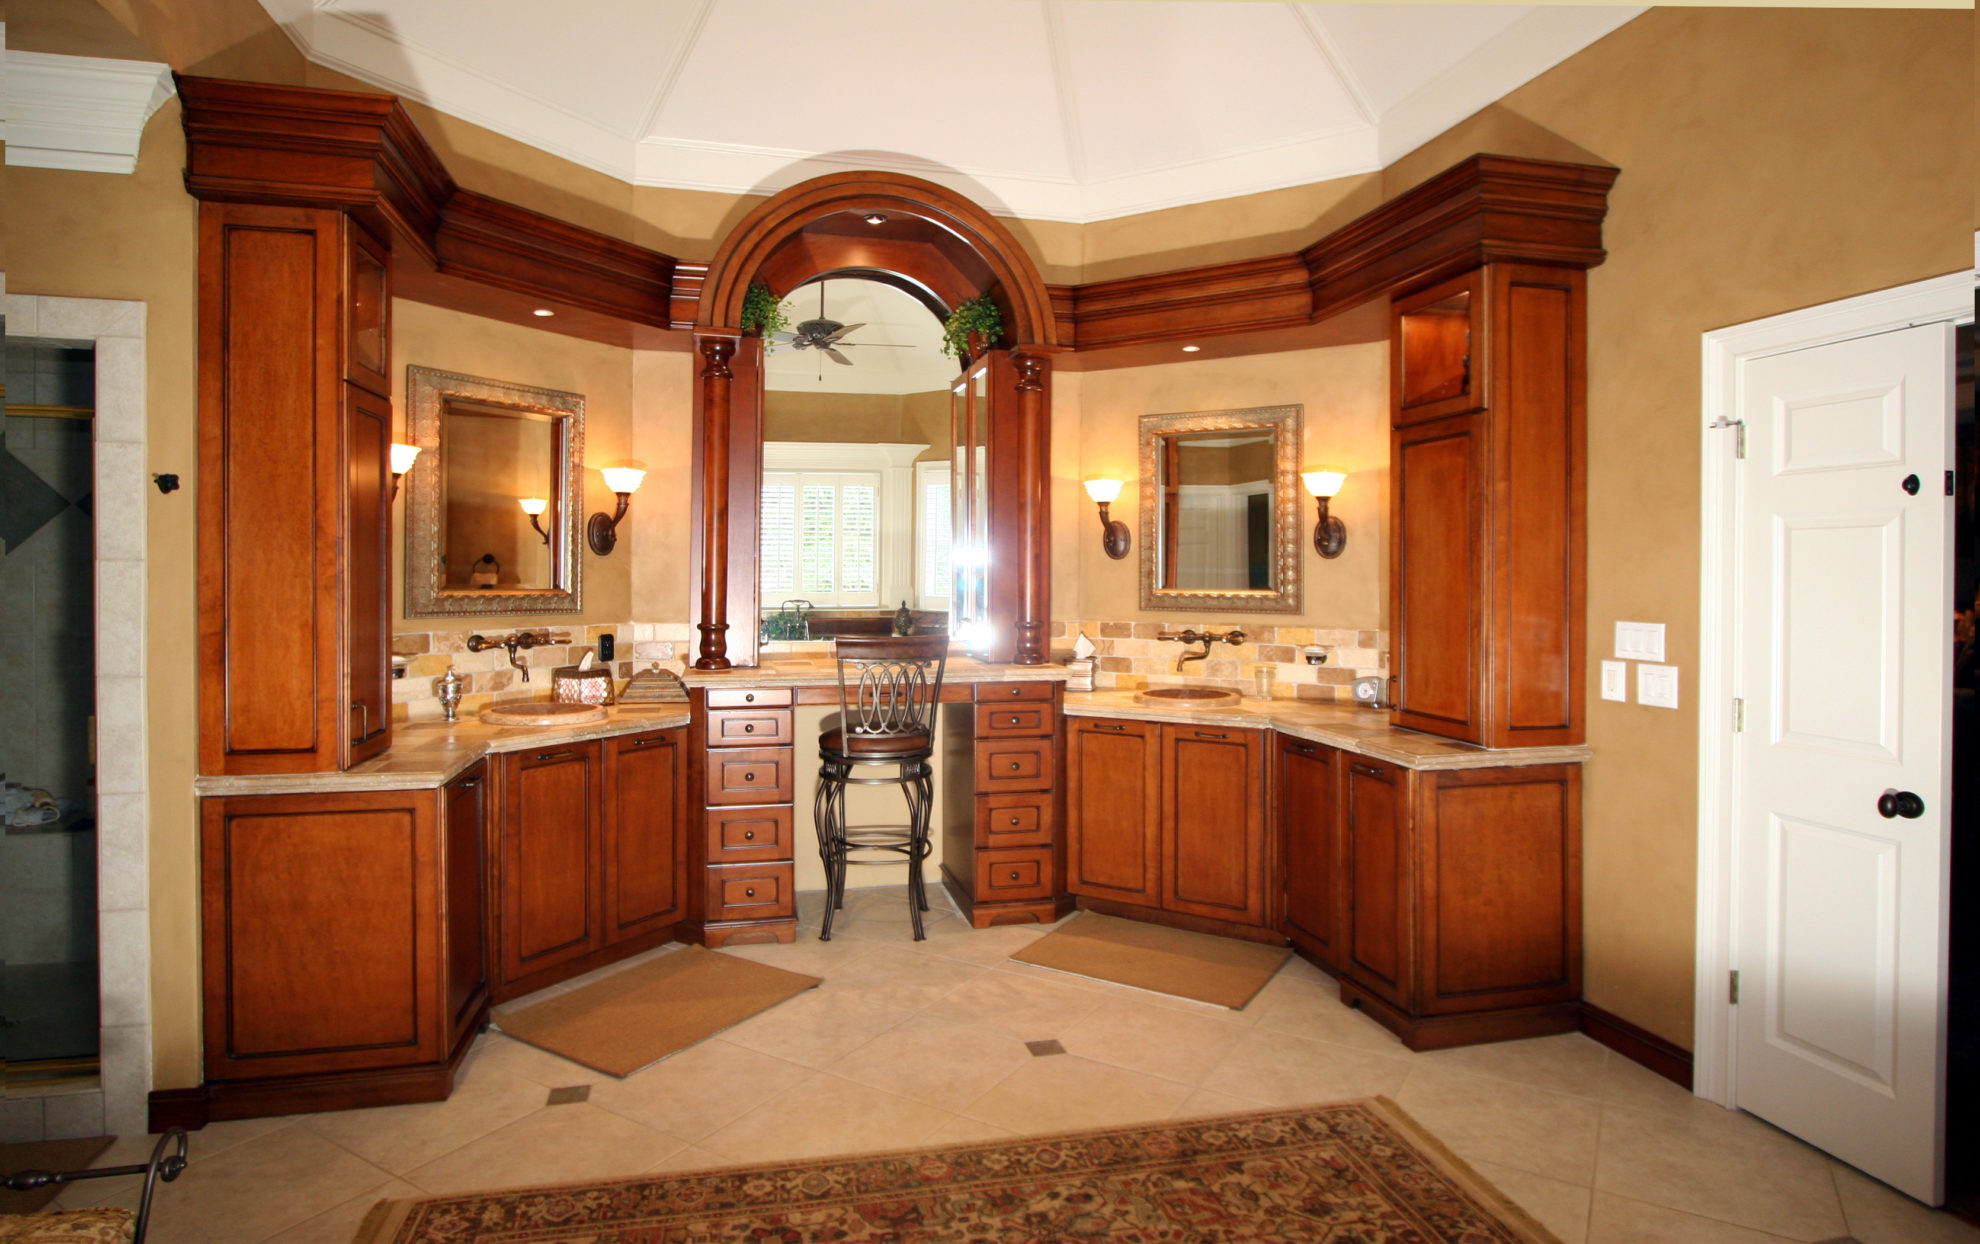 http://creativecabinetryinc.com/wp-content/uploads/2017/02/j-bathroom-master-cherry-wood-double-sink-cabinets-and-makeup-vanity-e1548362592179.jpg